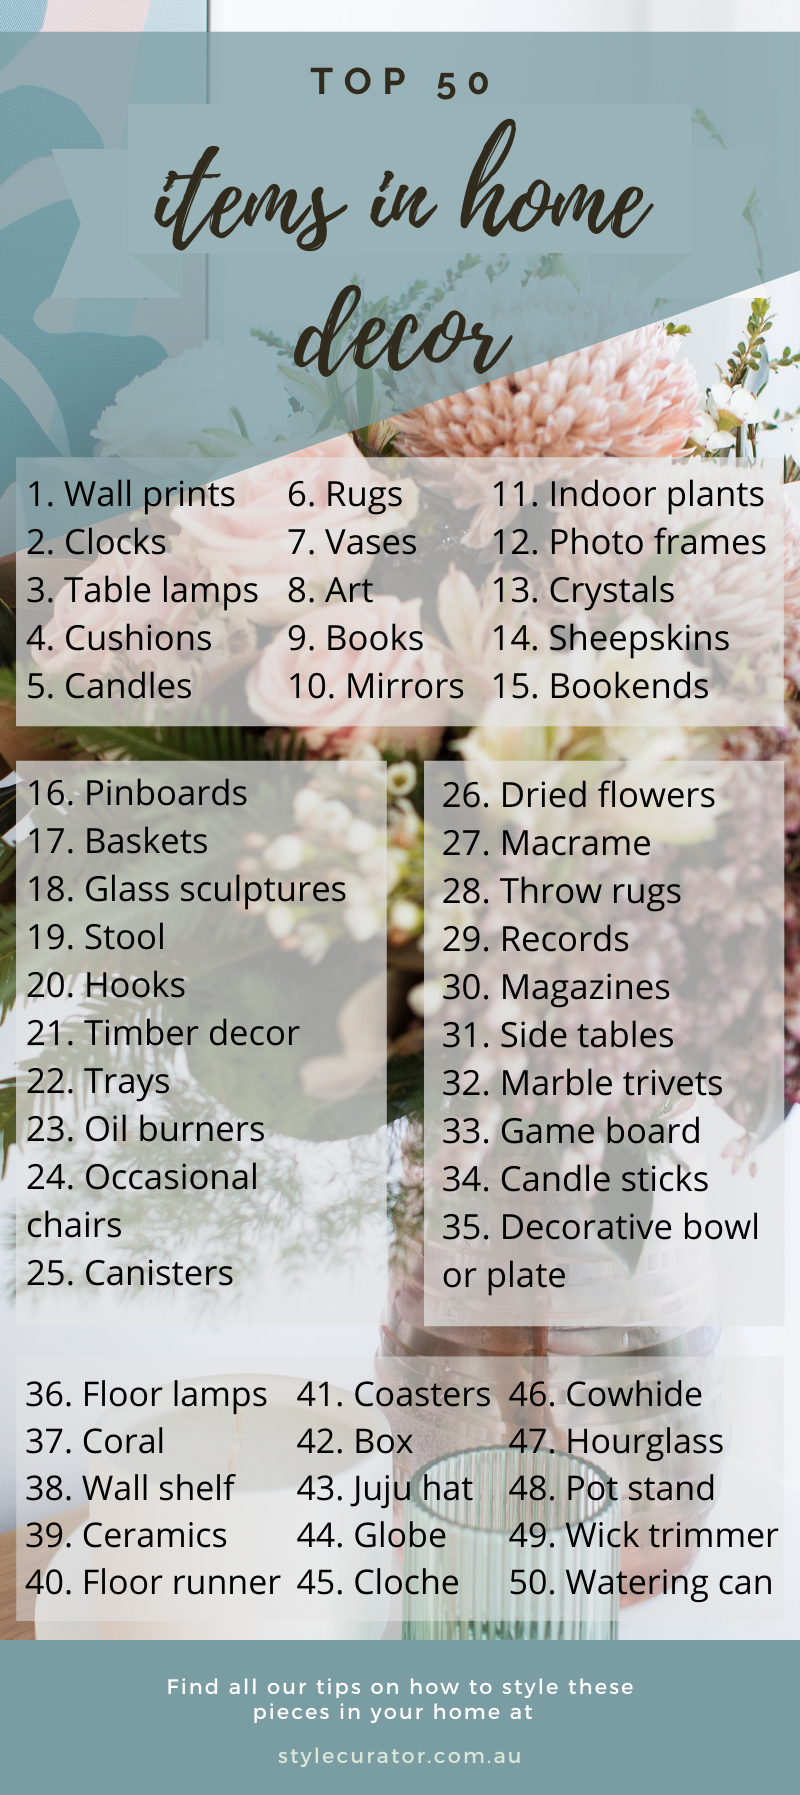 Top 50 items in home decor